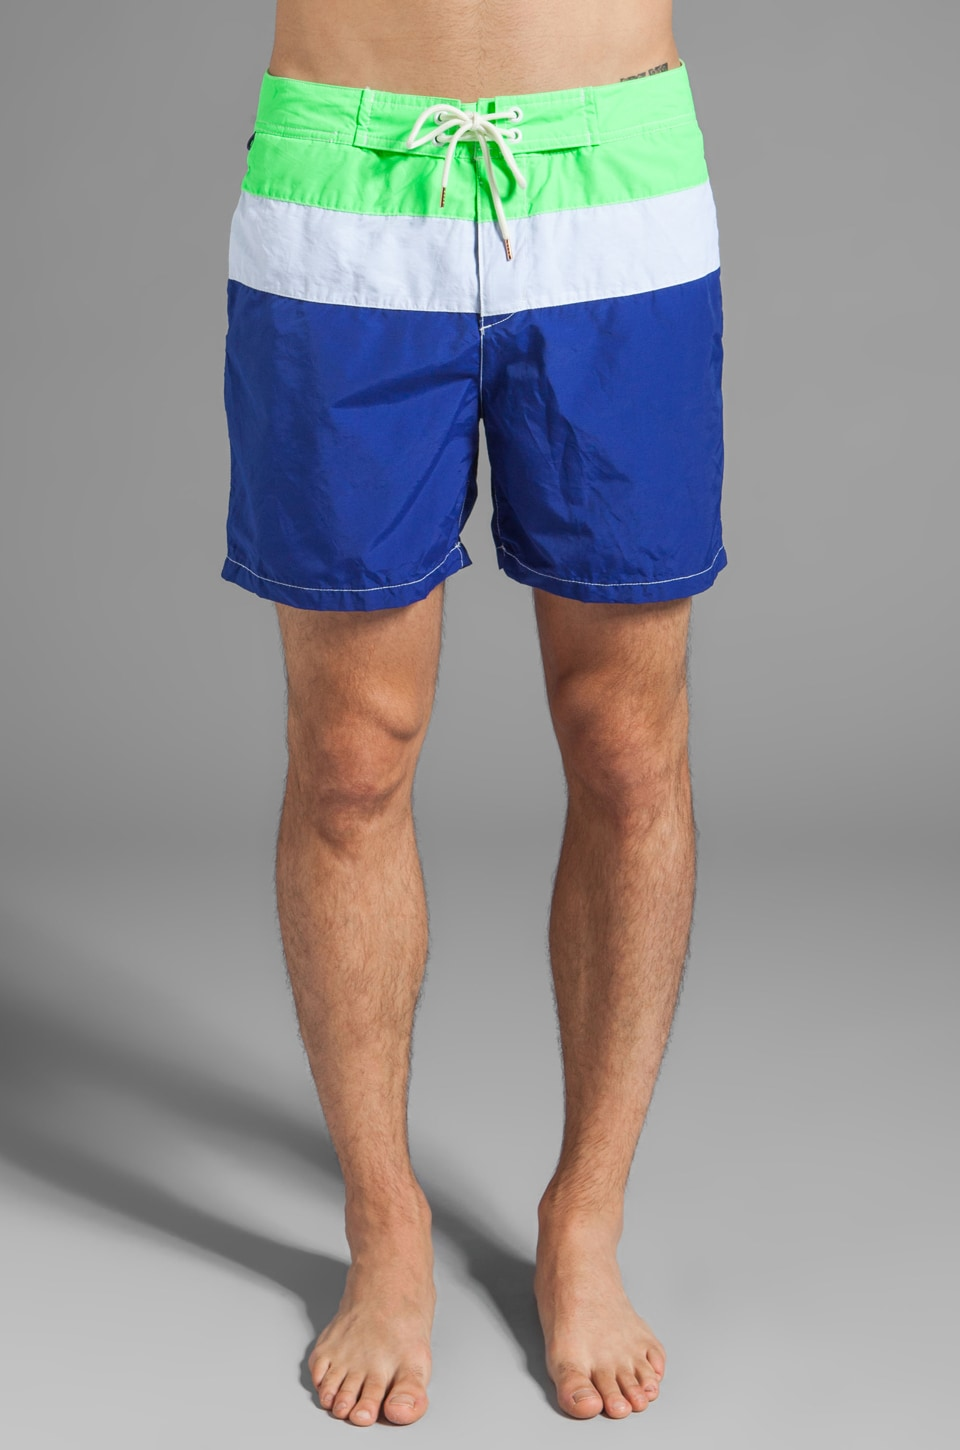 Scotch & Soda Colorblock Swim Short in Green/White/Blue